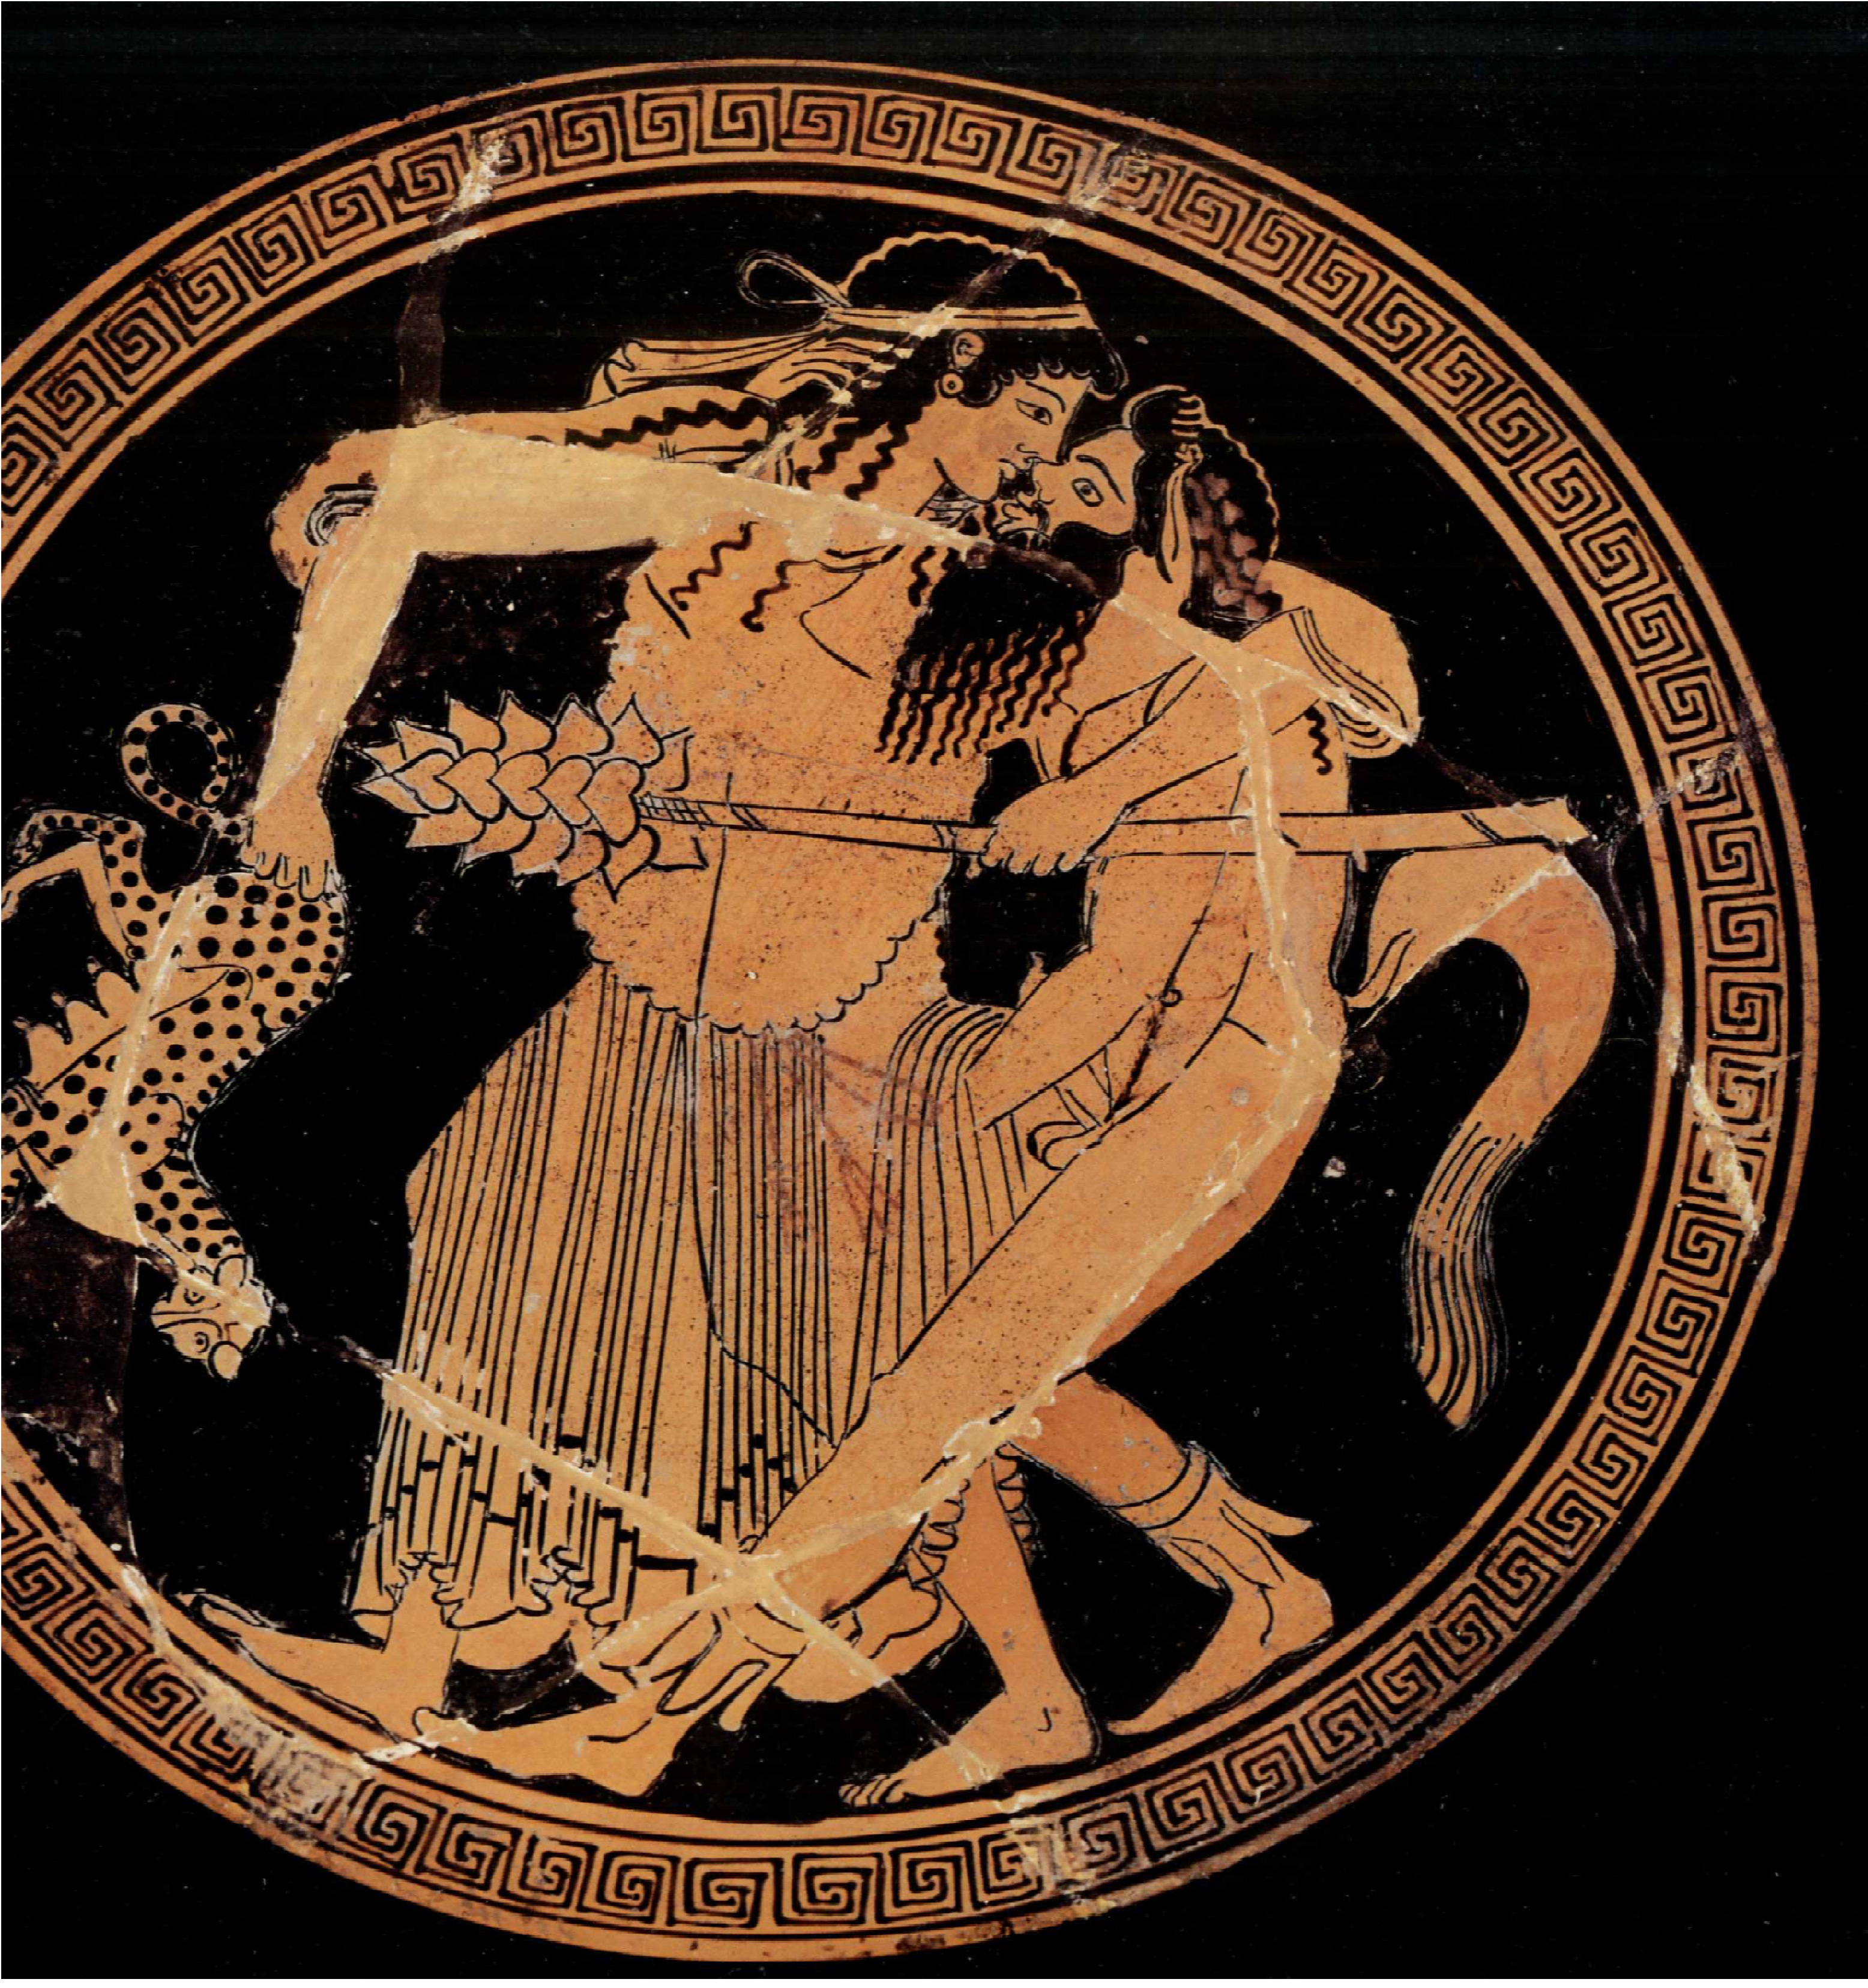 women in gilgamesh and iliad The role of women in the iliad sensous motifshowever,we can confortably realize that roles of women in the most known two ancient stories,the epic of gilgamesh.